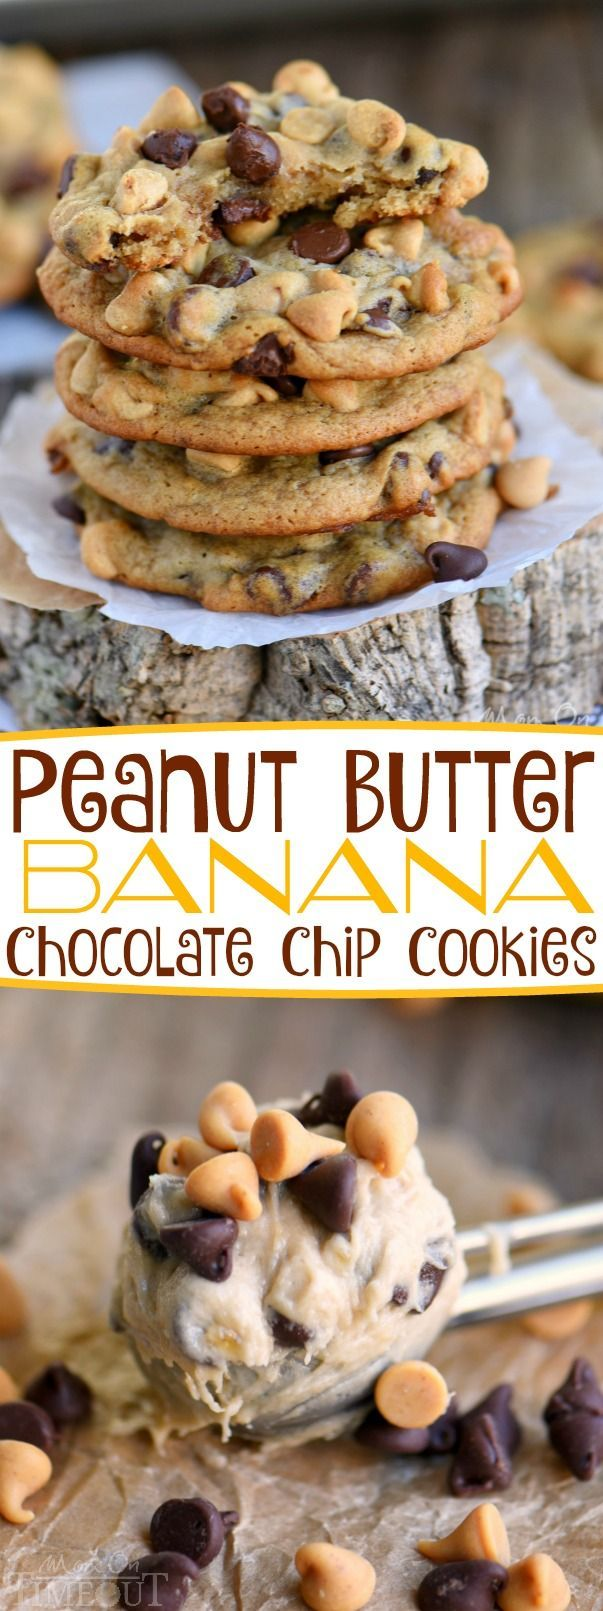 Got ripe bananas? These easy Peanut Butter Banana Chocolate Chip Cookies are WAY more fun than making banana bread and so delicious too! Super soft and absolutely amazing! // Mom On Timeout #peanutbutter #banana #chocolate #chocolatechip #cookies #recipe #dessert #noeggs #eggless